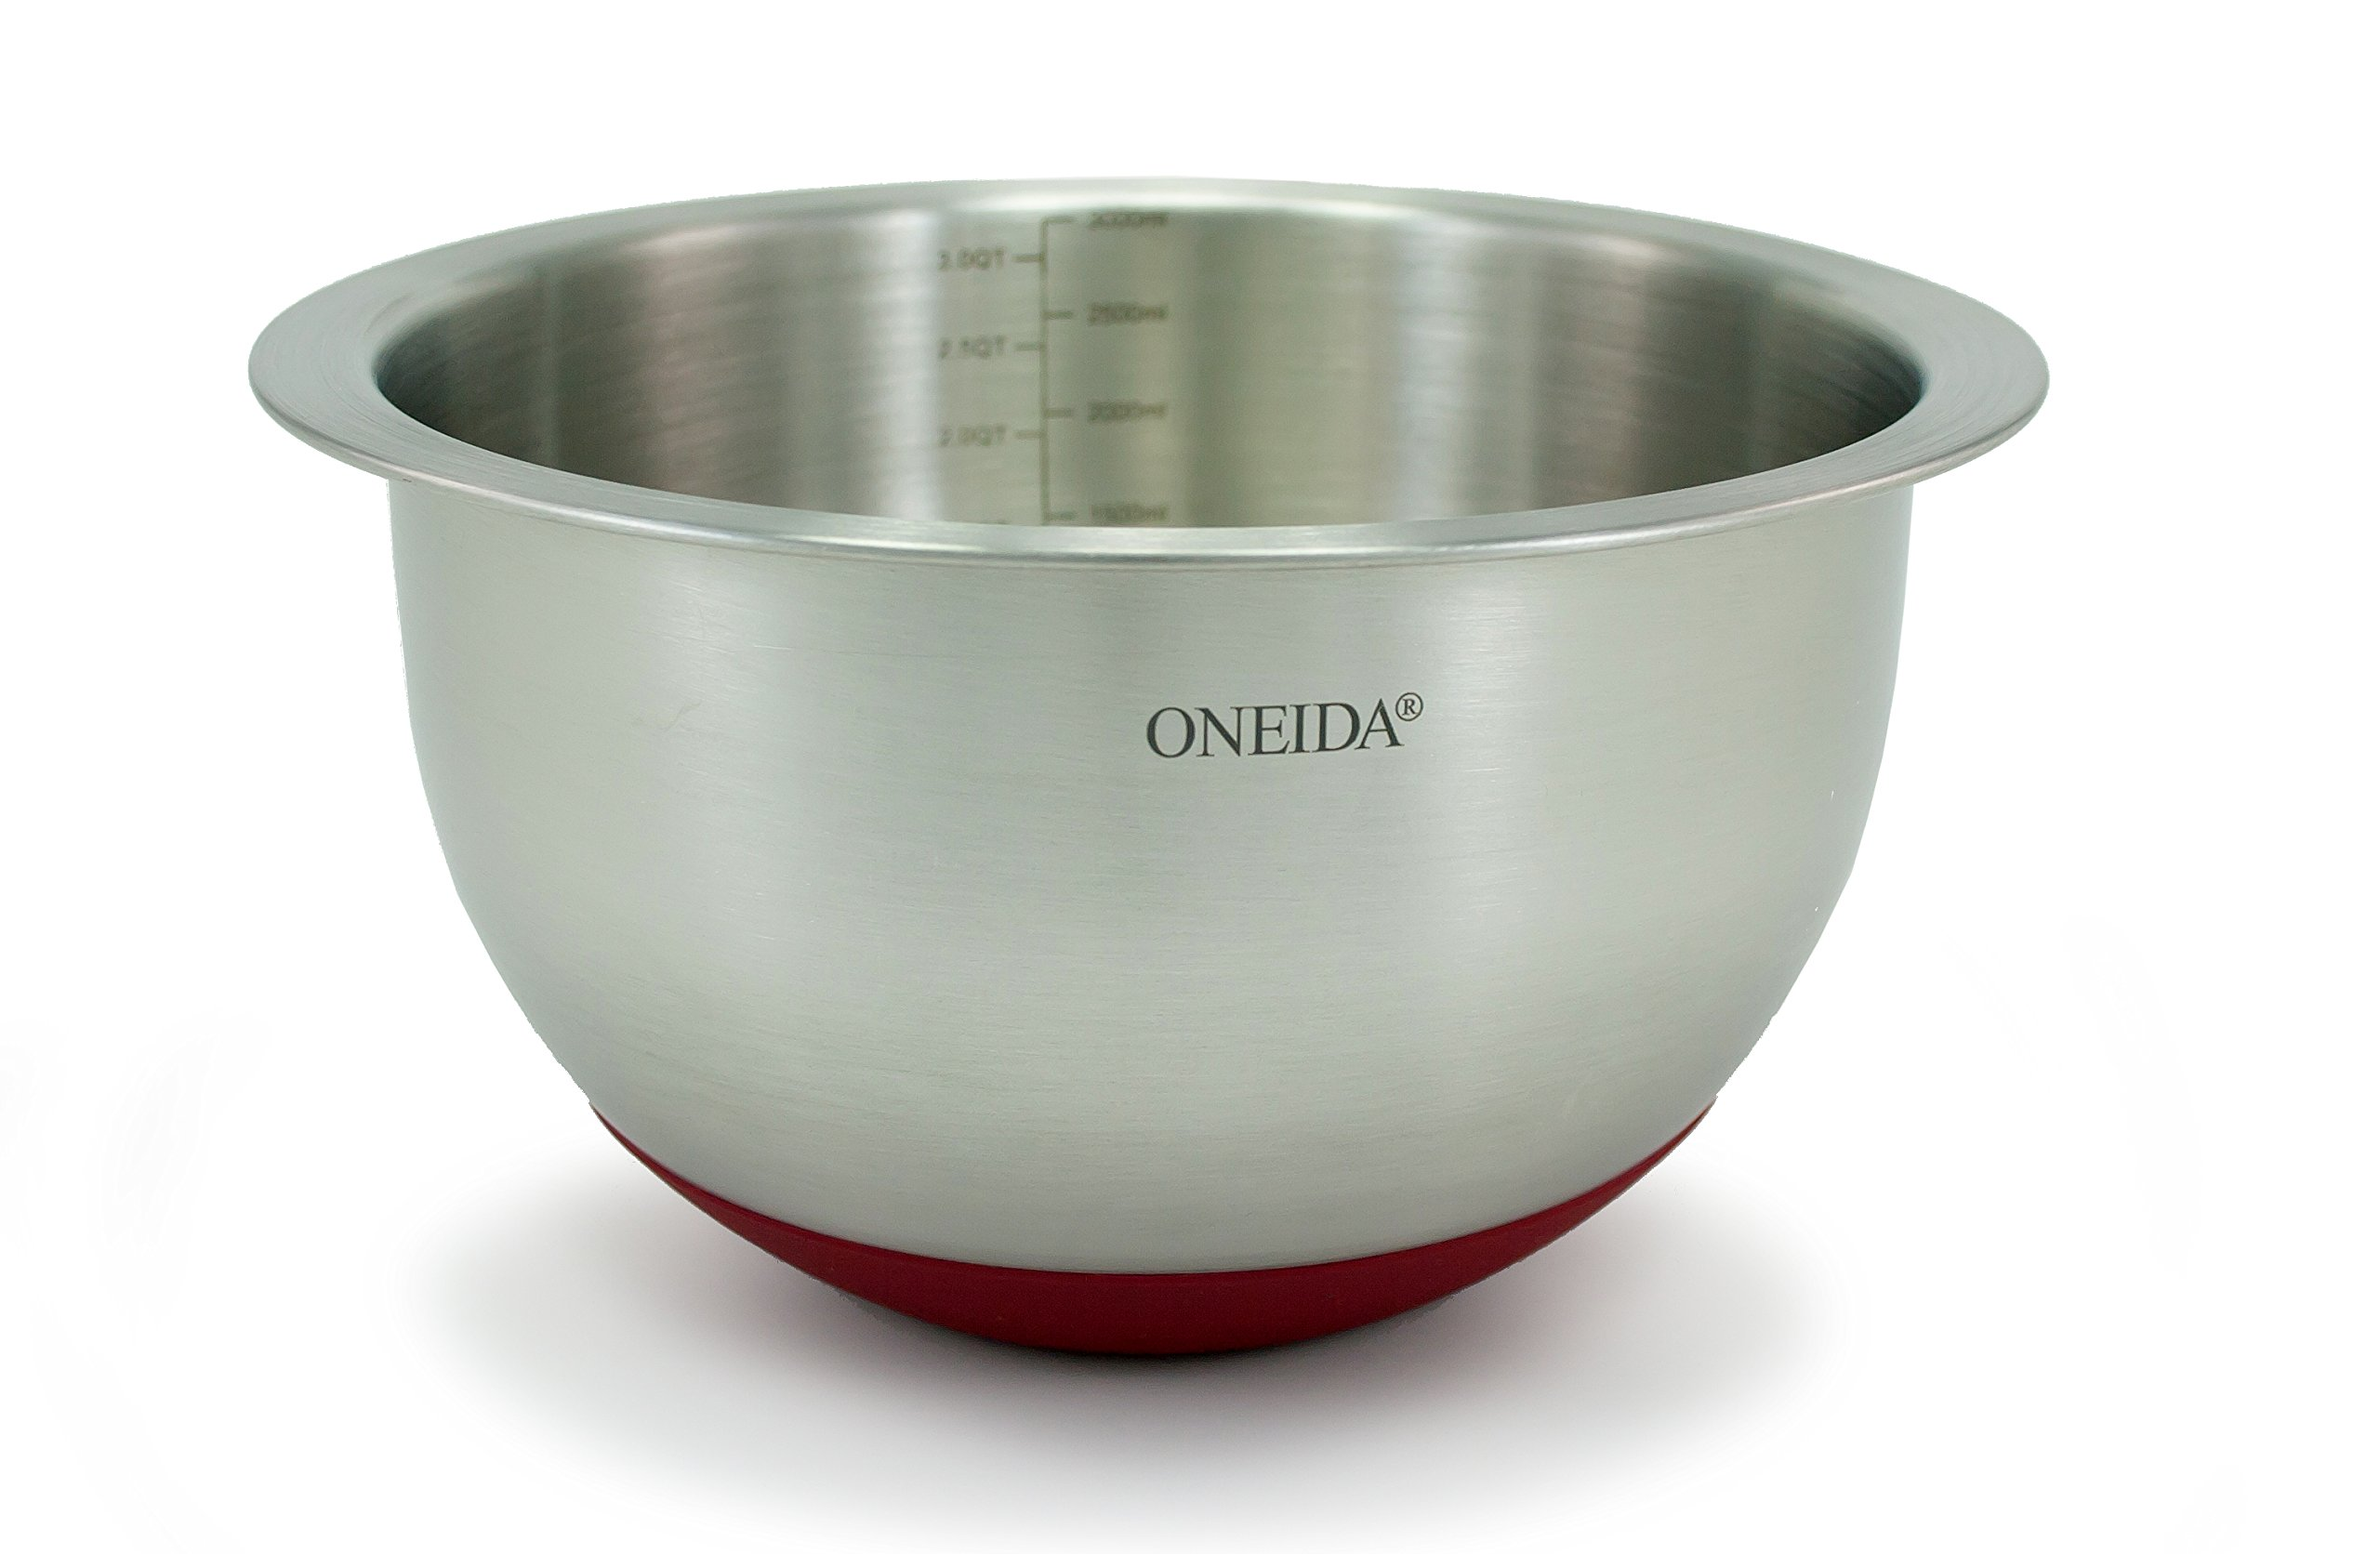 Oneida Stainless Steel Mixing Bowls (3 Quart)